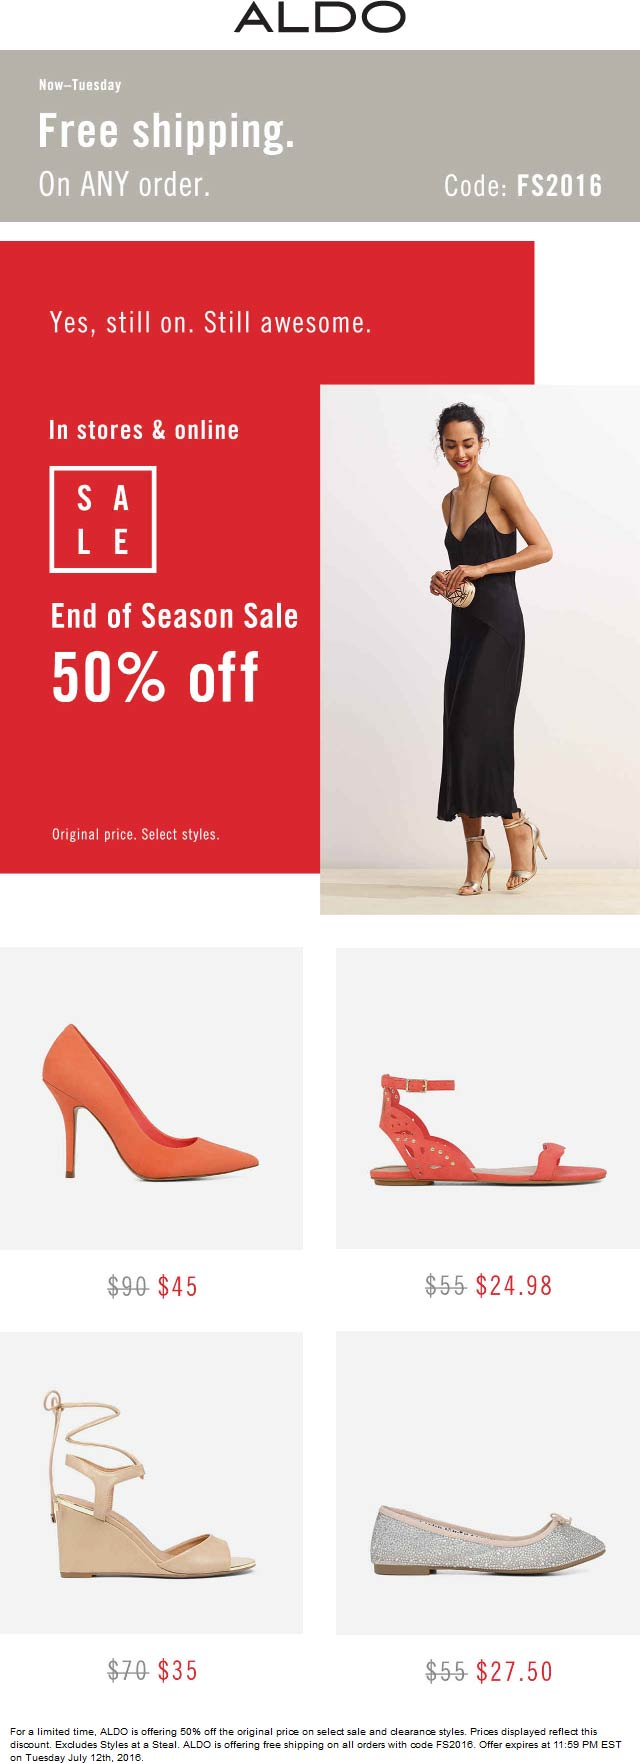 Aldo Coupon October 2017 50% off sale going on at ALDO, or online with free shipping via promo code FS2016